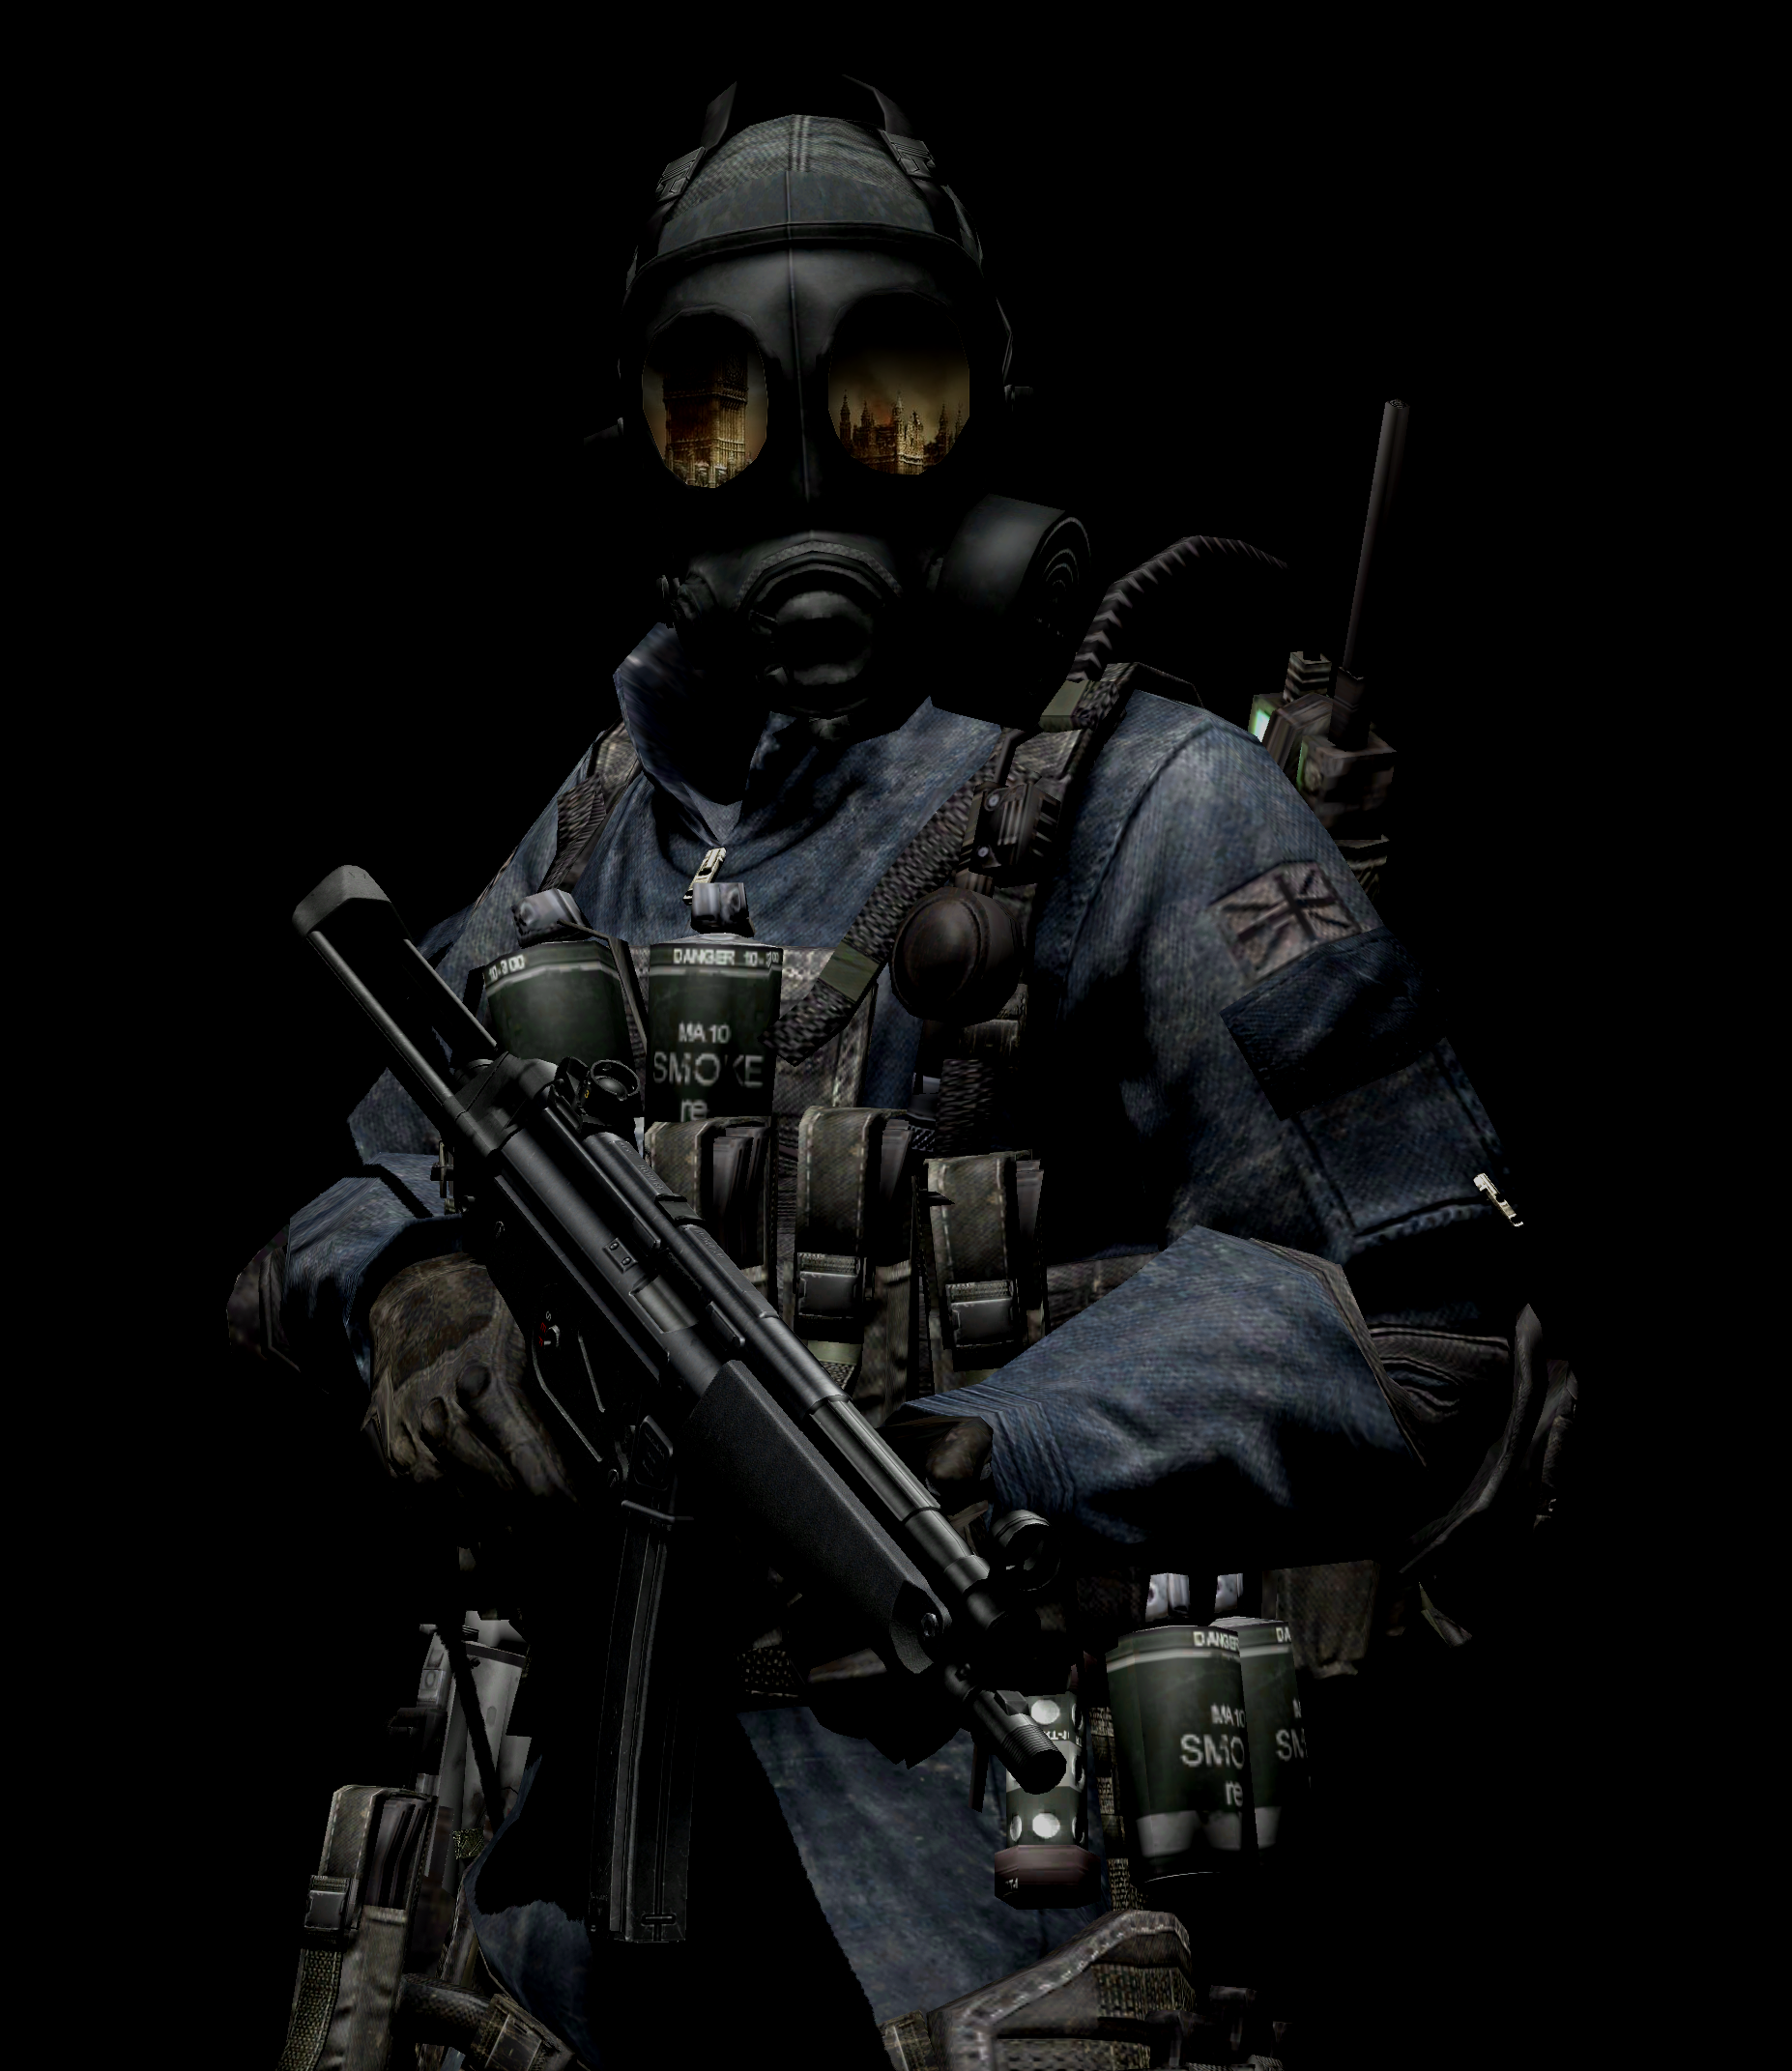 The Biohazard Gas Mask